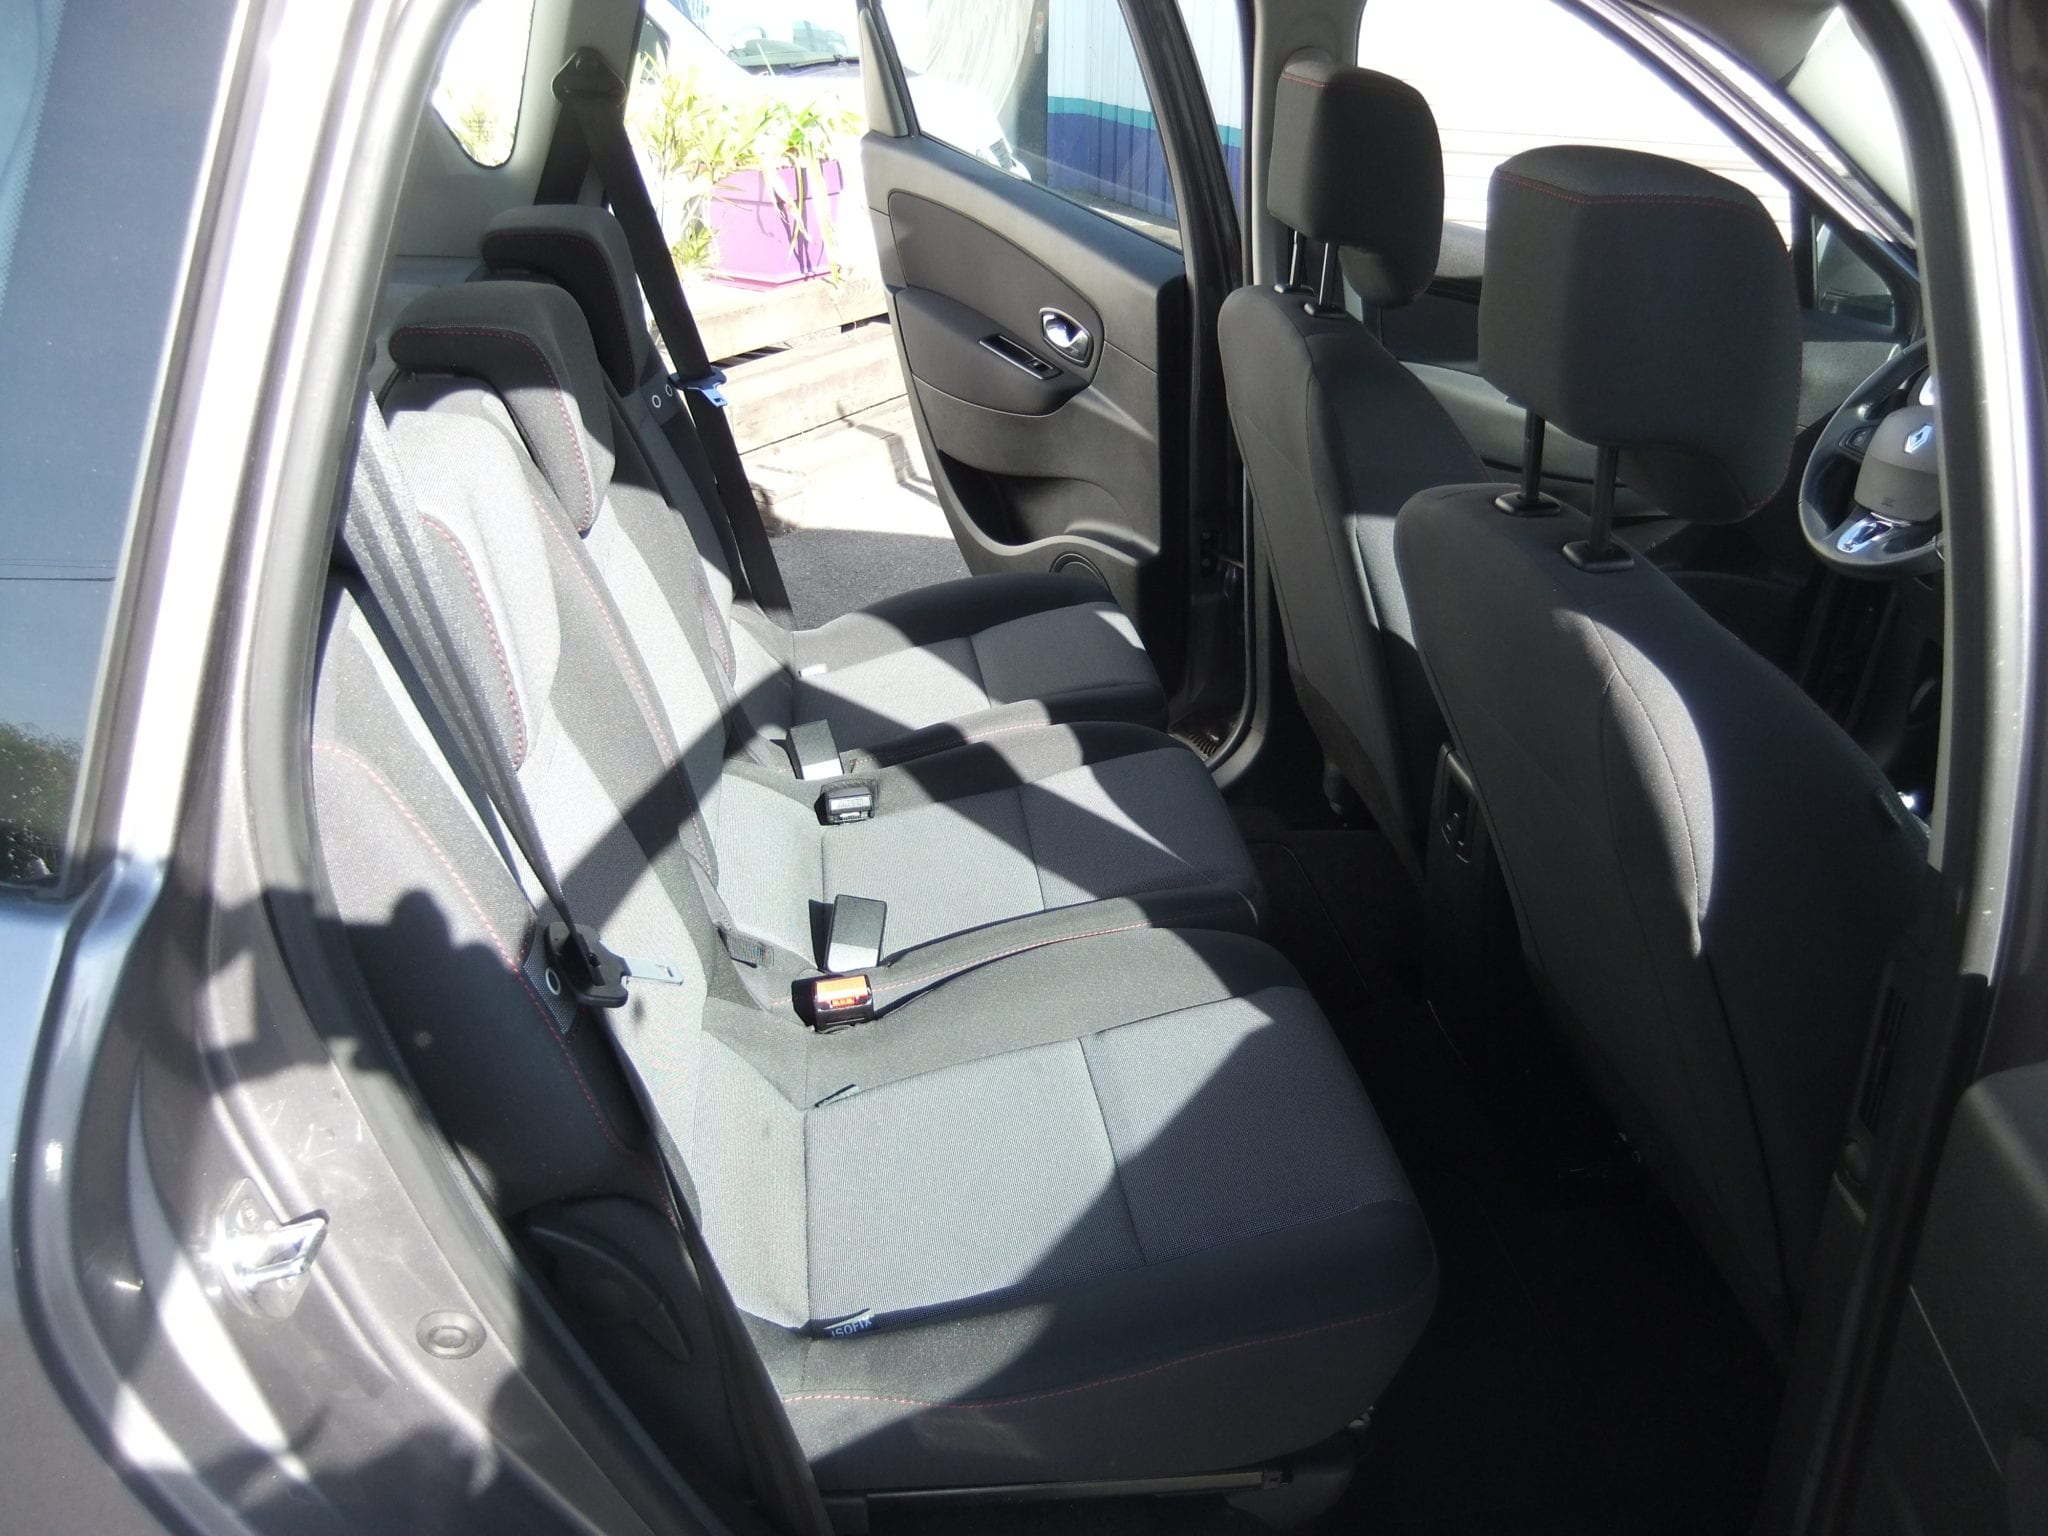 Renault SCENIC 3 DCI 110 Energy Business ECO 2  - Image 6